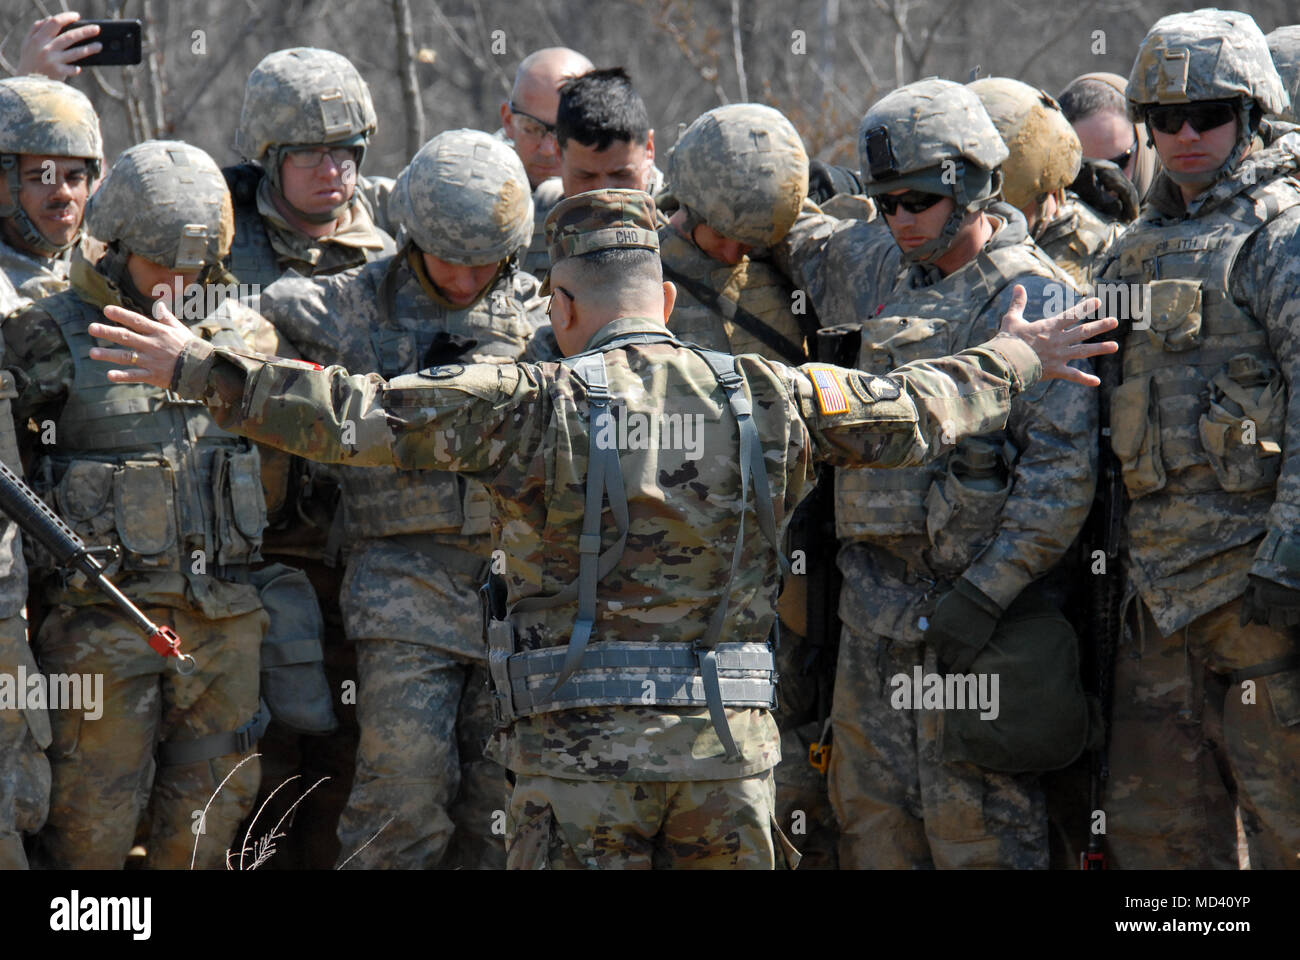 Daniel Cho 78th Training Division Leads Participants Of Combat Support Exercise CSTX 78 18 03 In Prayer Before They Begin Movement Under Fire